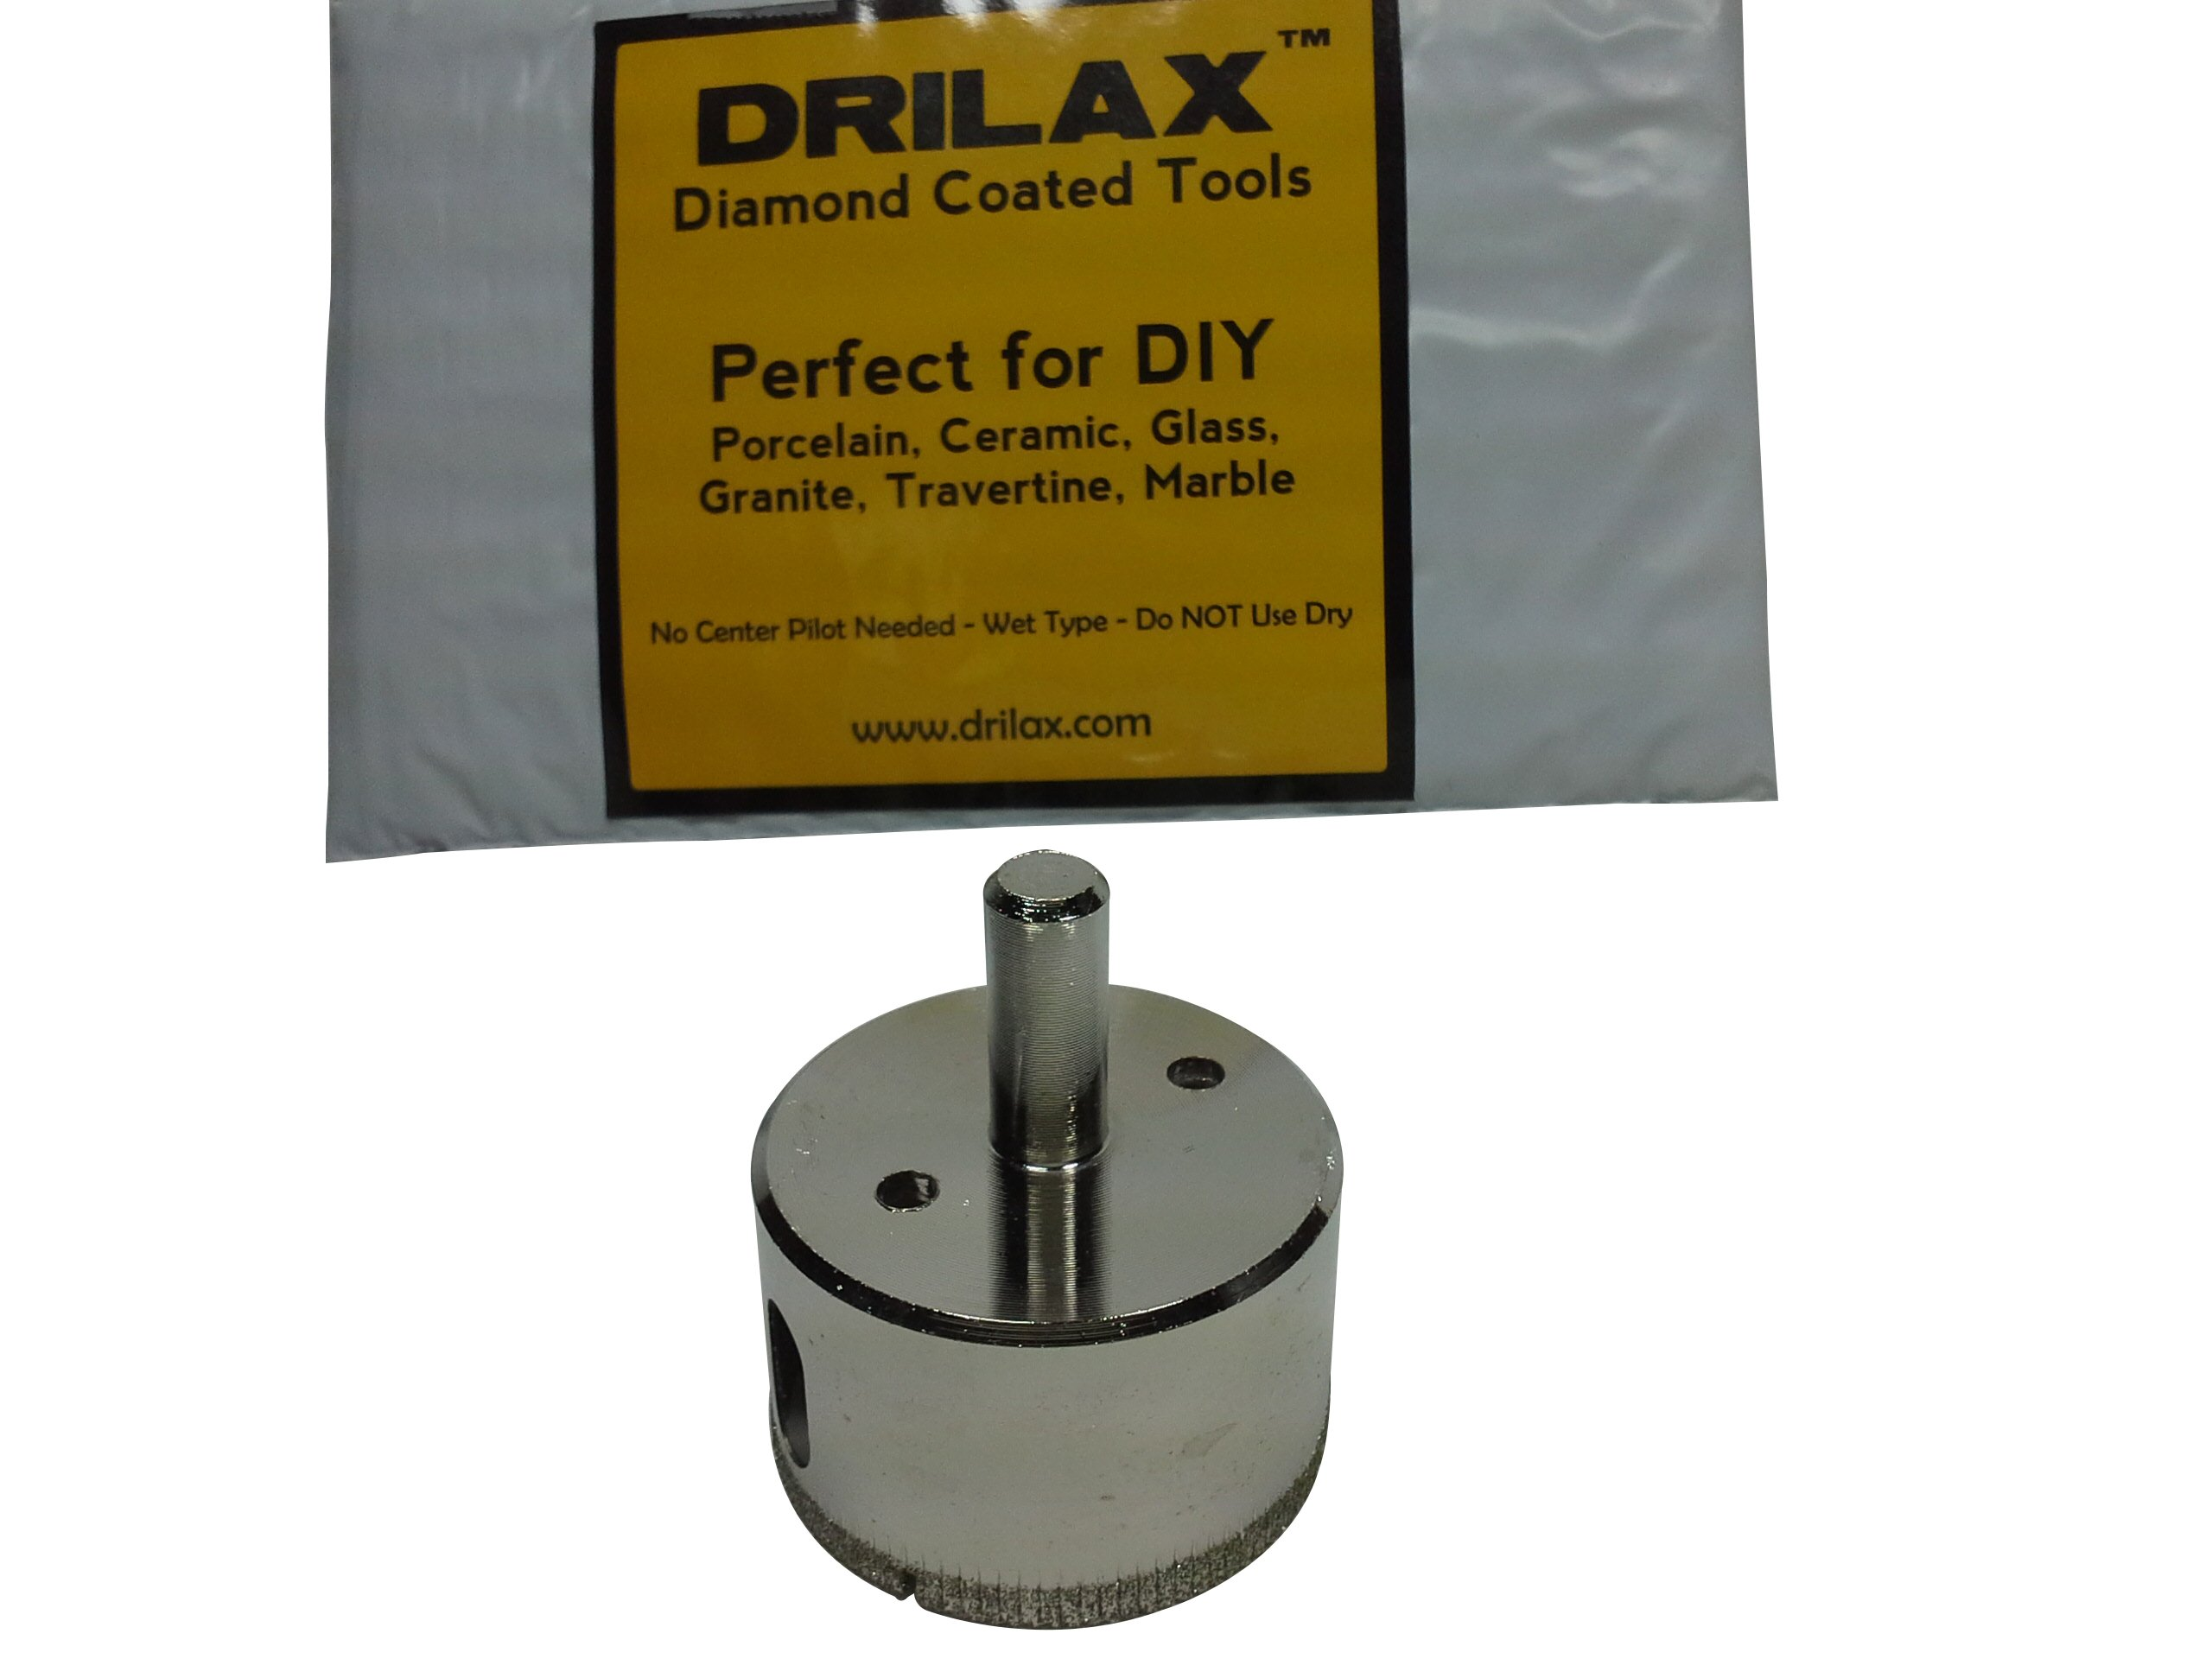 """Drilax 2 Inch Diamond Hole Saw Drill Bit Tiles, Glass, Fish Tanks, Marble, Granite Countertop, Ceramic, Porcelain, Coated Core Bits Holesaw DIY Kitchen, Bathroom, Shower, Faucet Installation Size 2"""""""